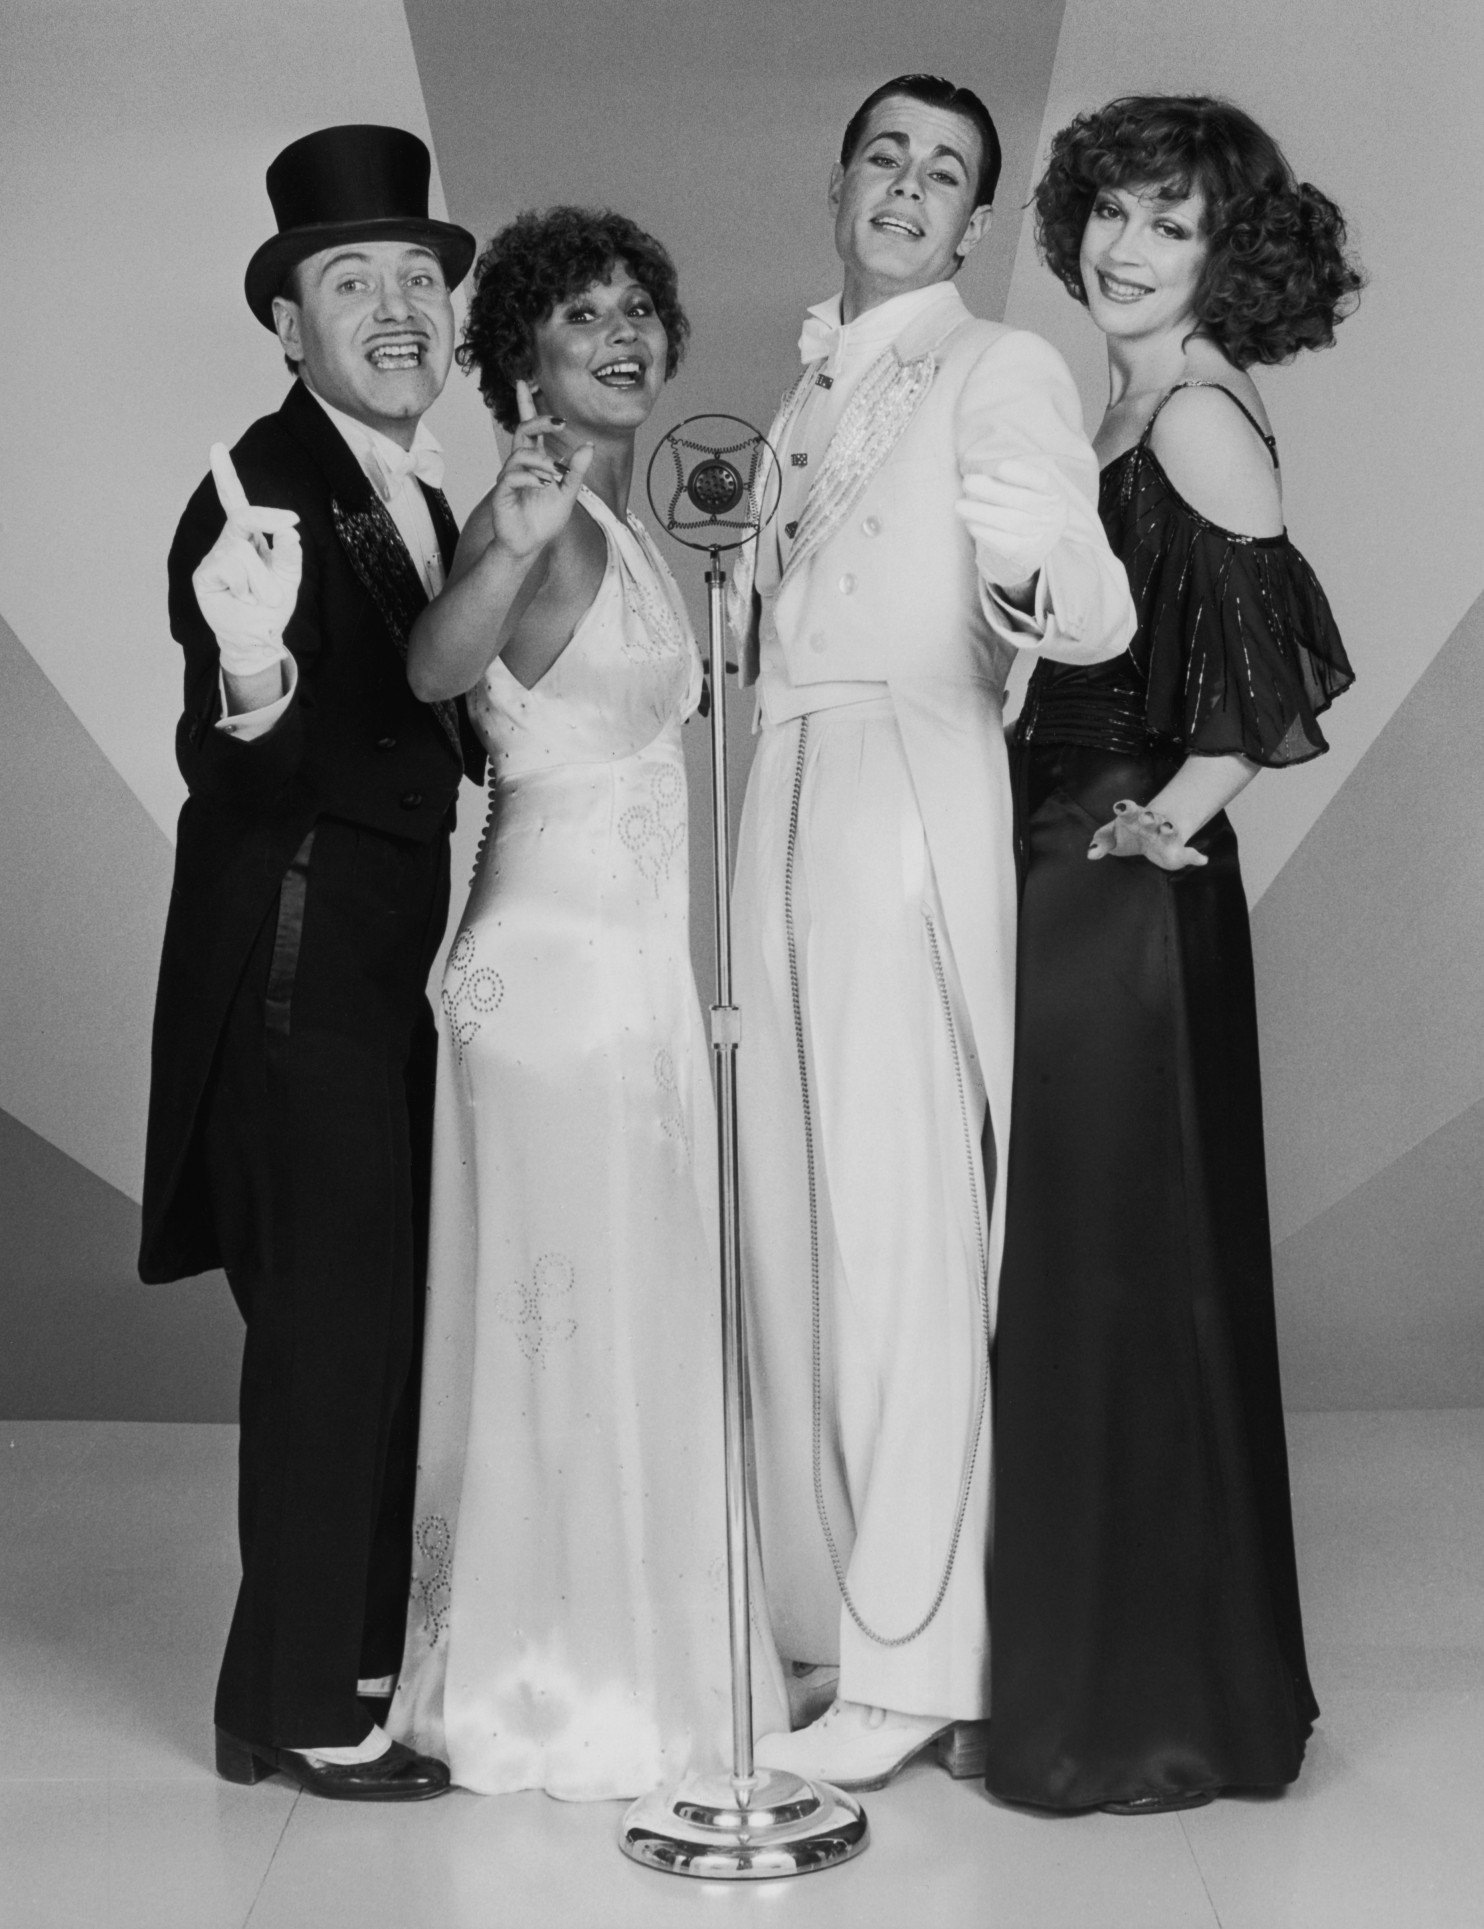 A publicity still from the early days of the Manhattan Transfer.